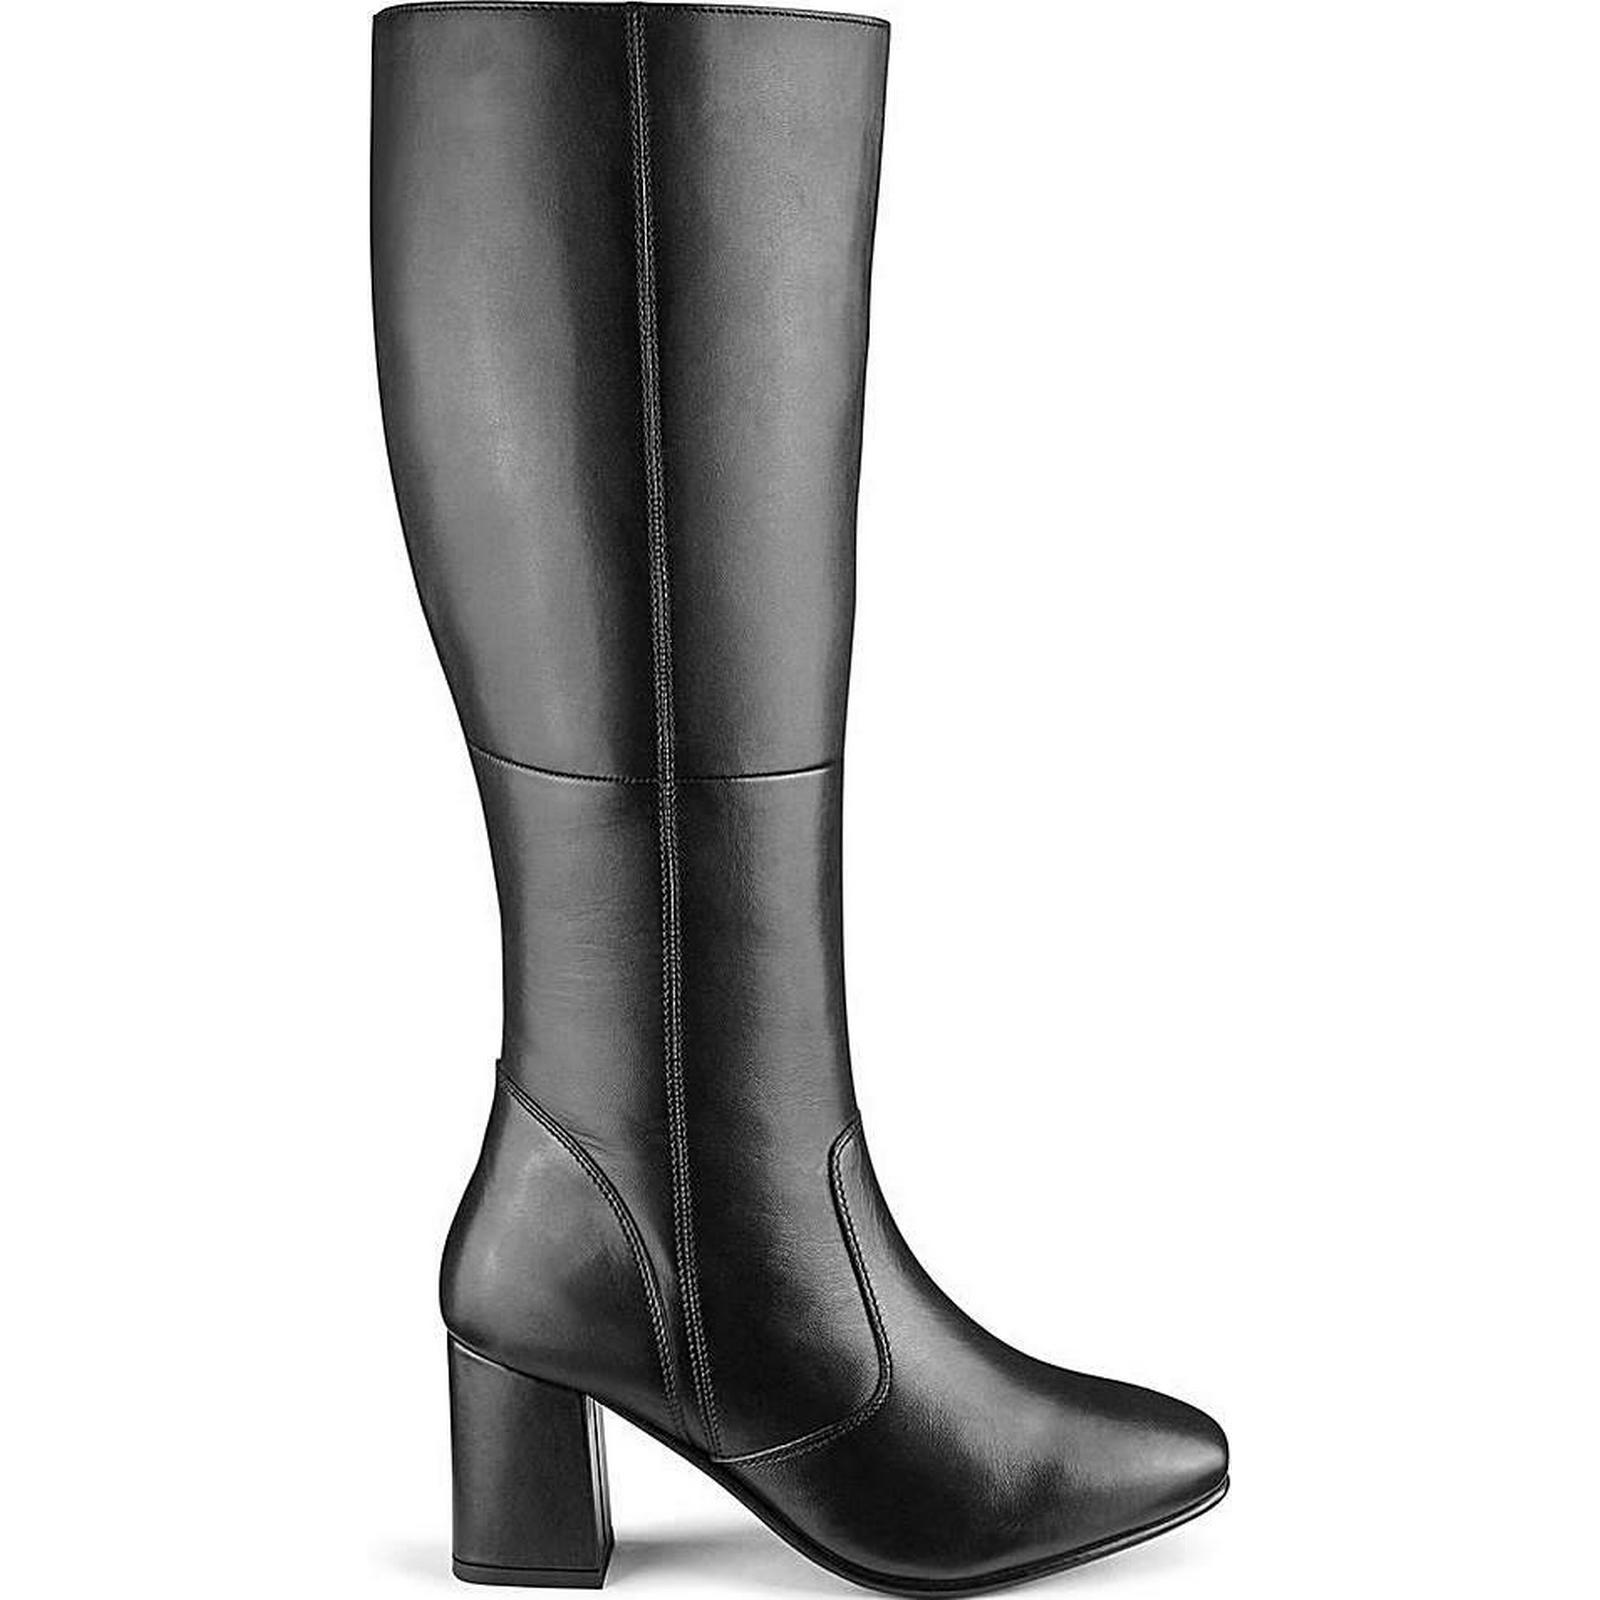 Heavenly Soles Leather Boots Plus EEE Fit Curvy Plus Boots Calf 13f09a